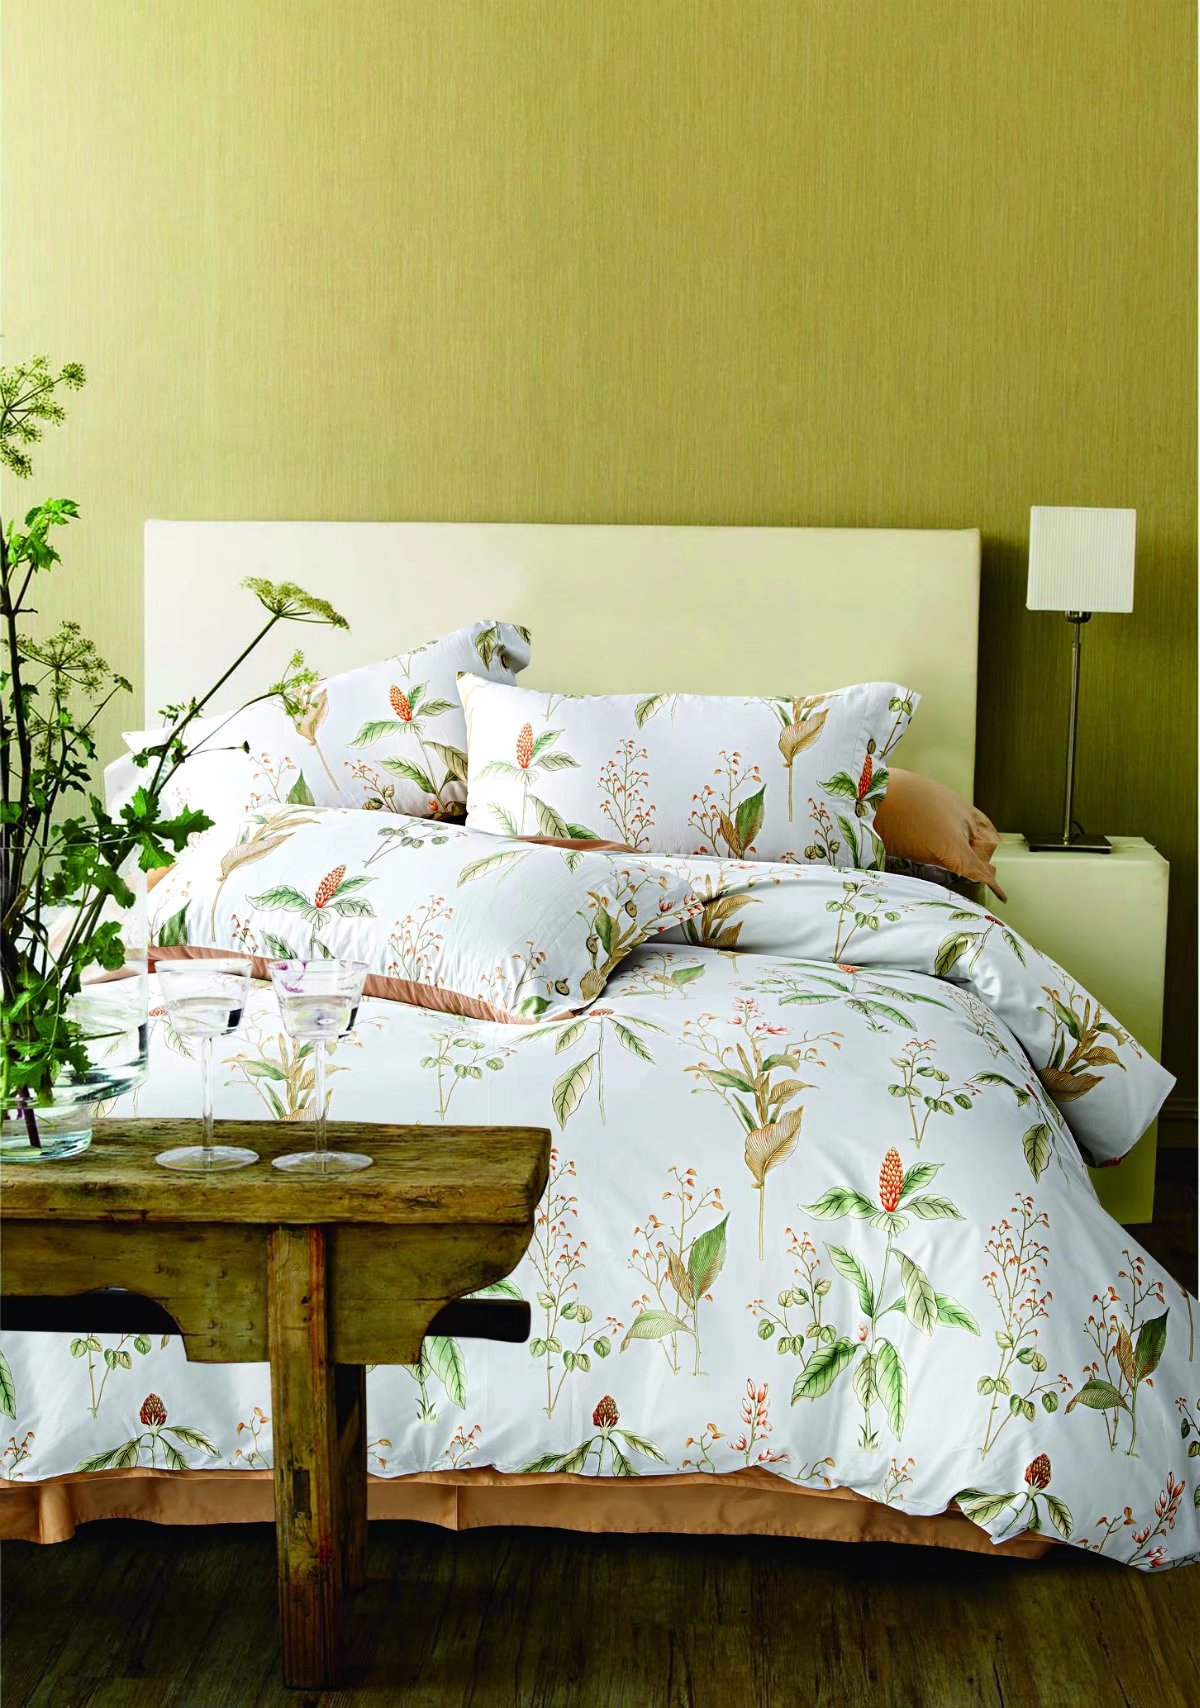 Premium 100% cotton French floral bed linen- CRMMS0021